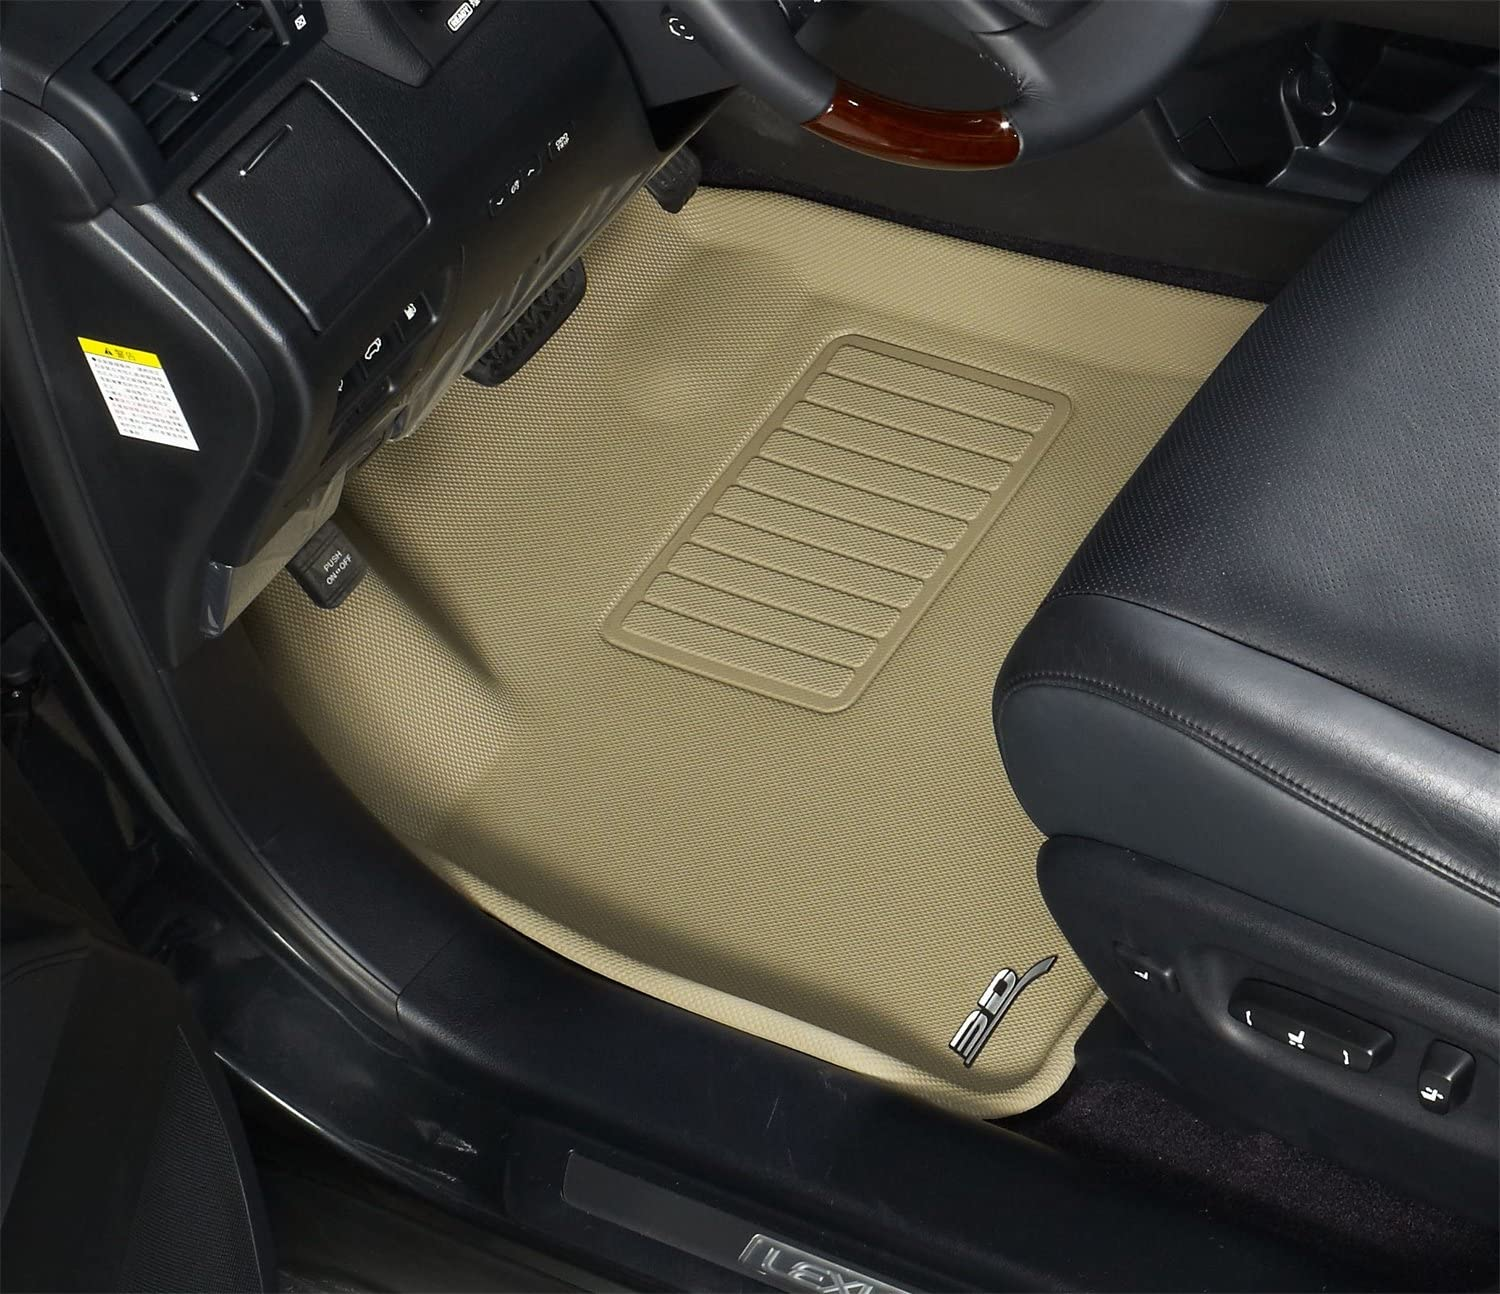 Kagu Rubber 3D MAXpider Second Row Custom Fit All-Weather Floor Mat for Select Chevrolet Impala Models Tan